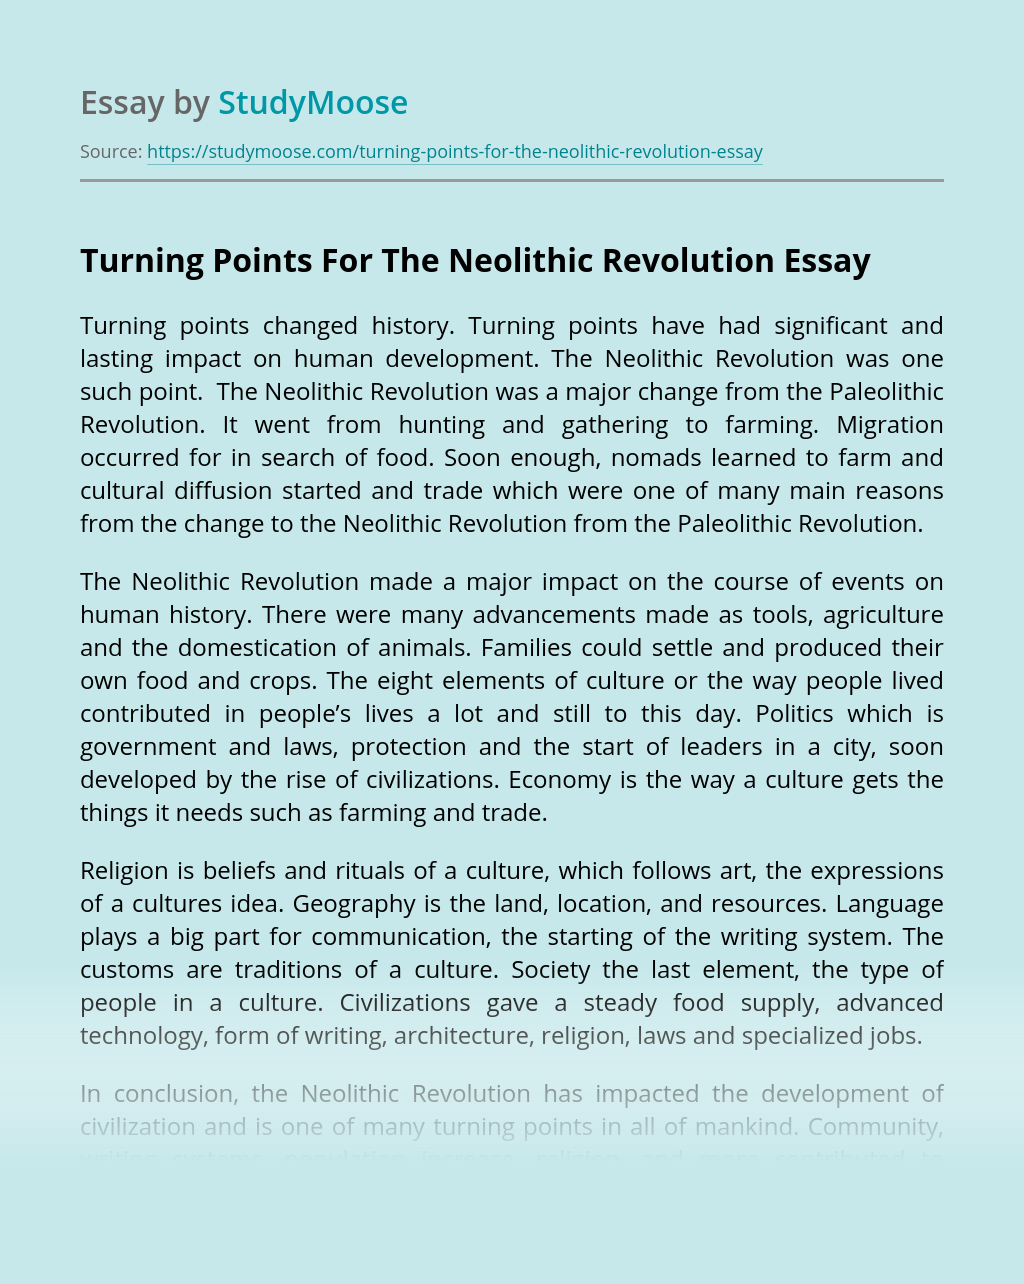 Turning Points For The Neolithic Revolution